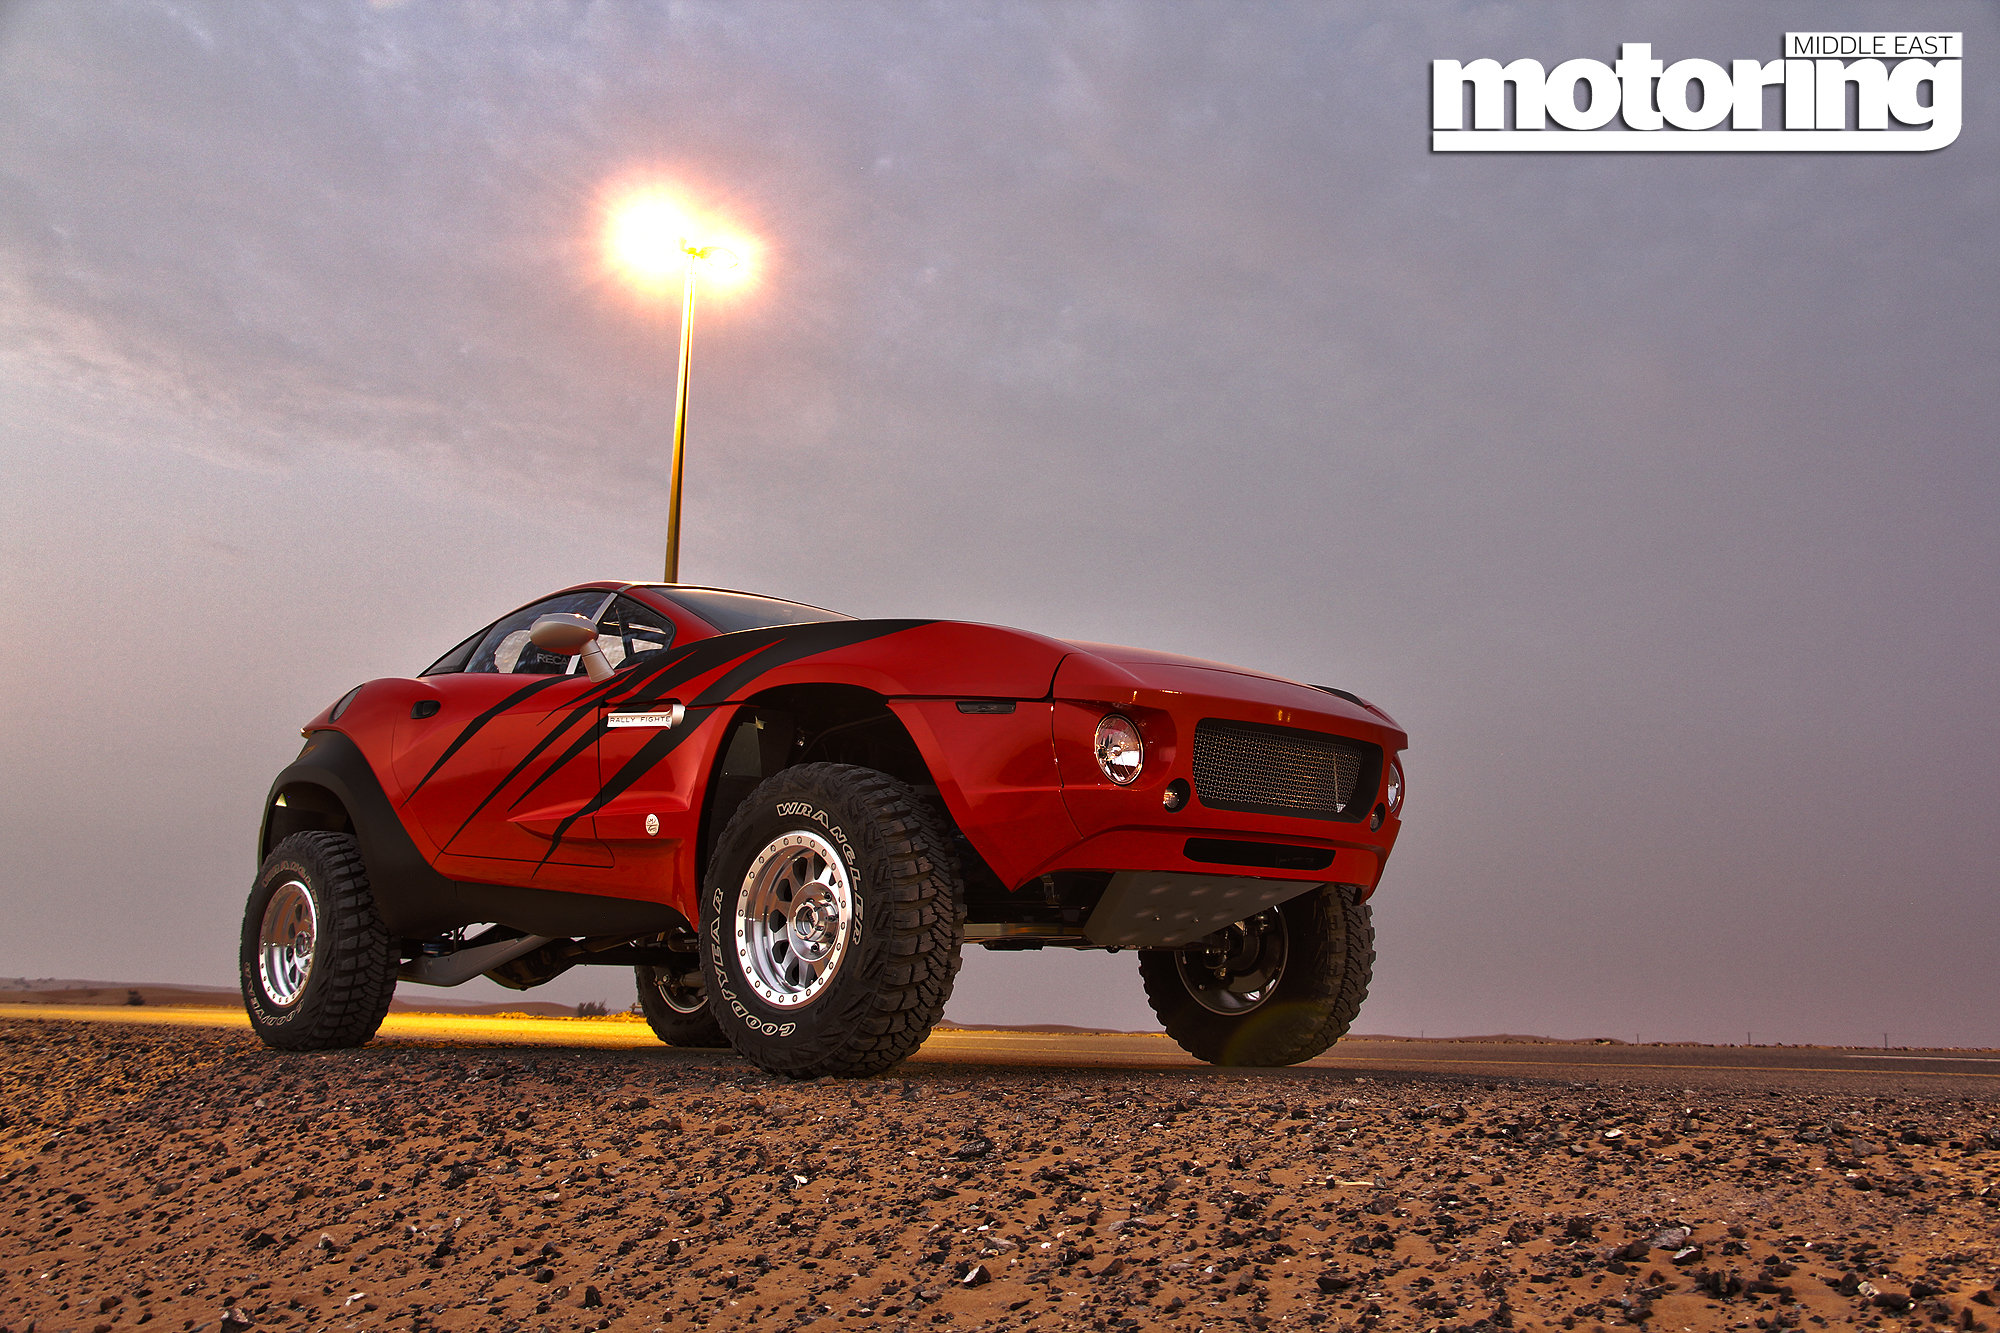 Exclusive Rally Fighter driven in the UAE Motoring